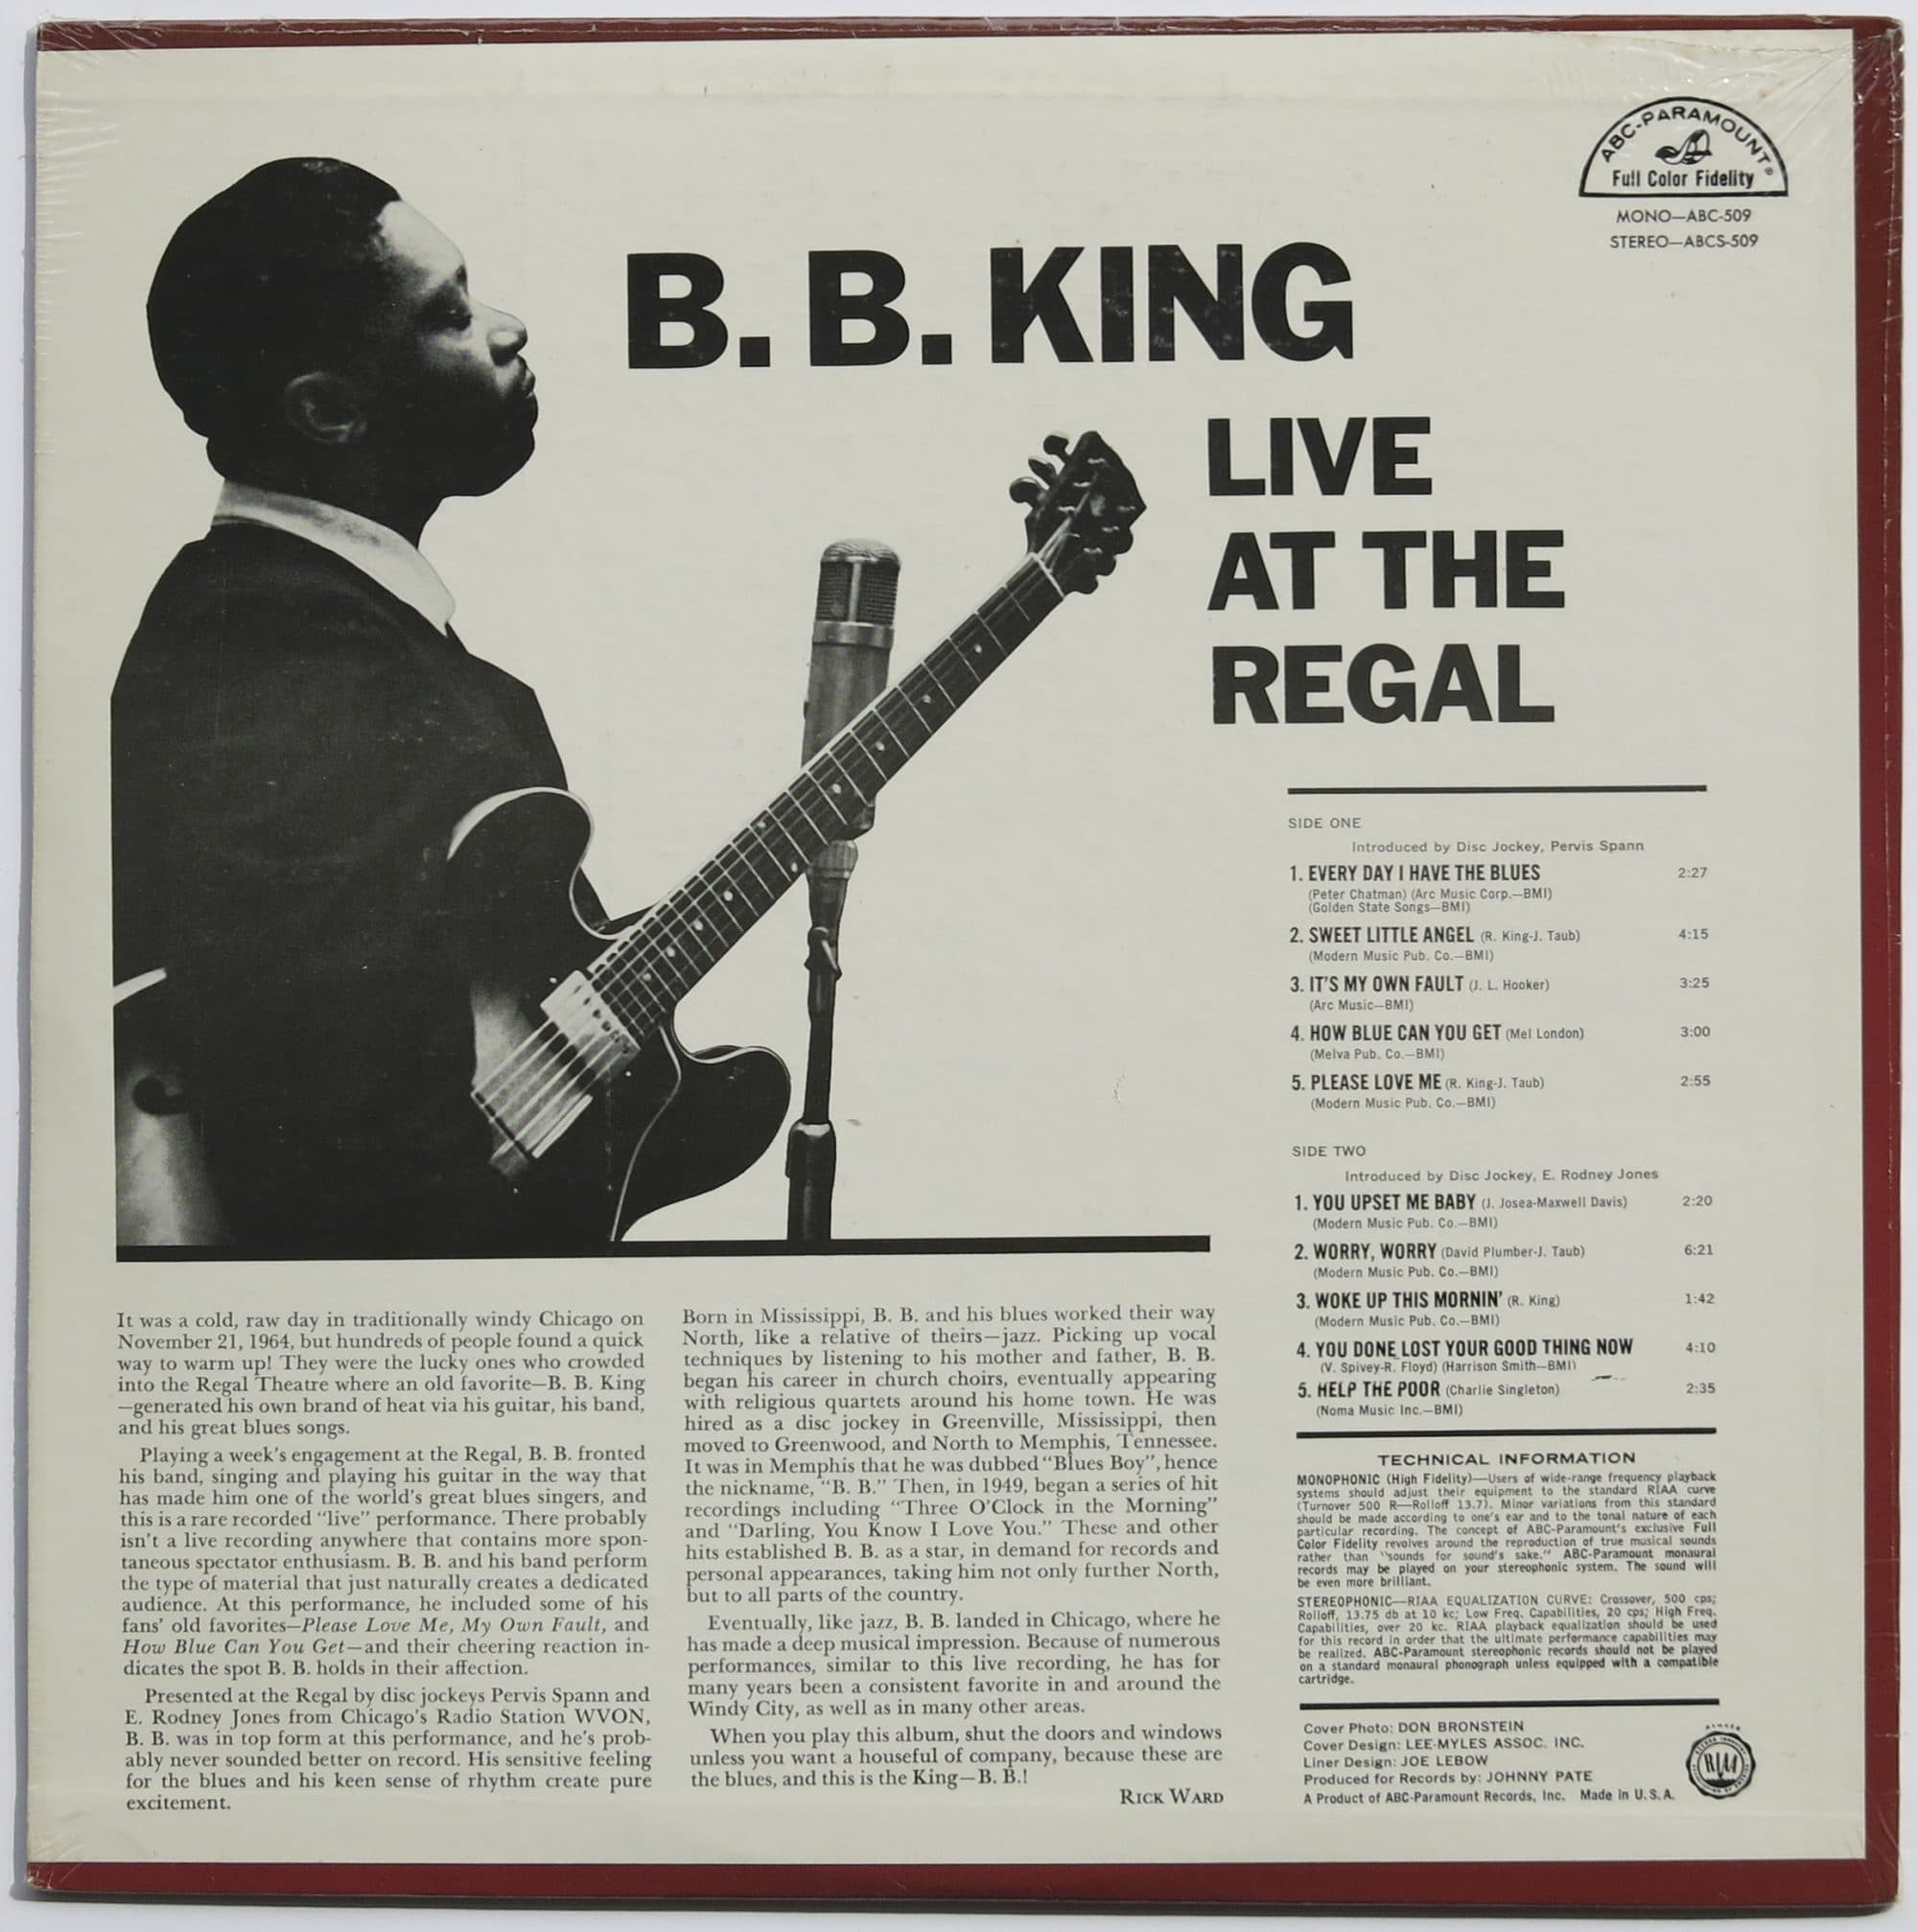 B.B. King - Great Moments With B.B. King